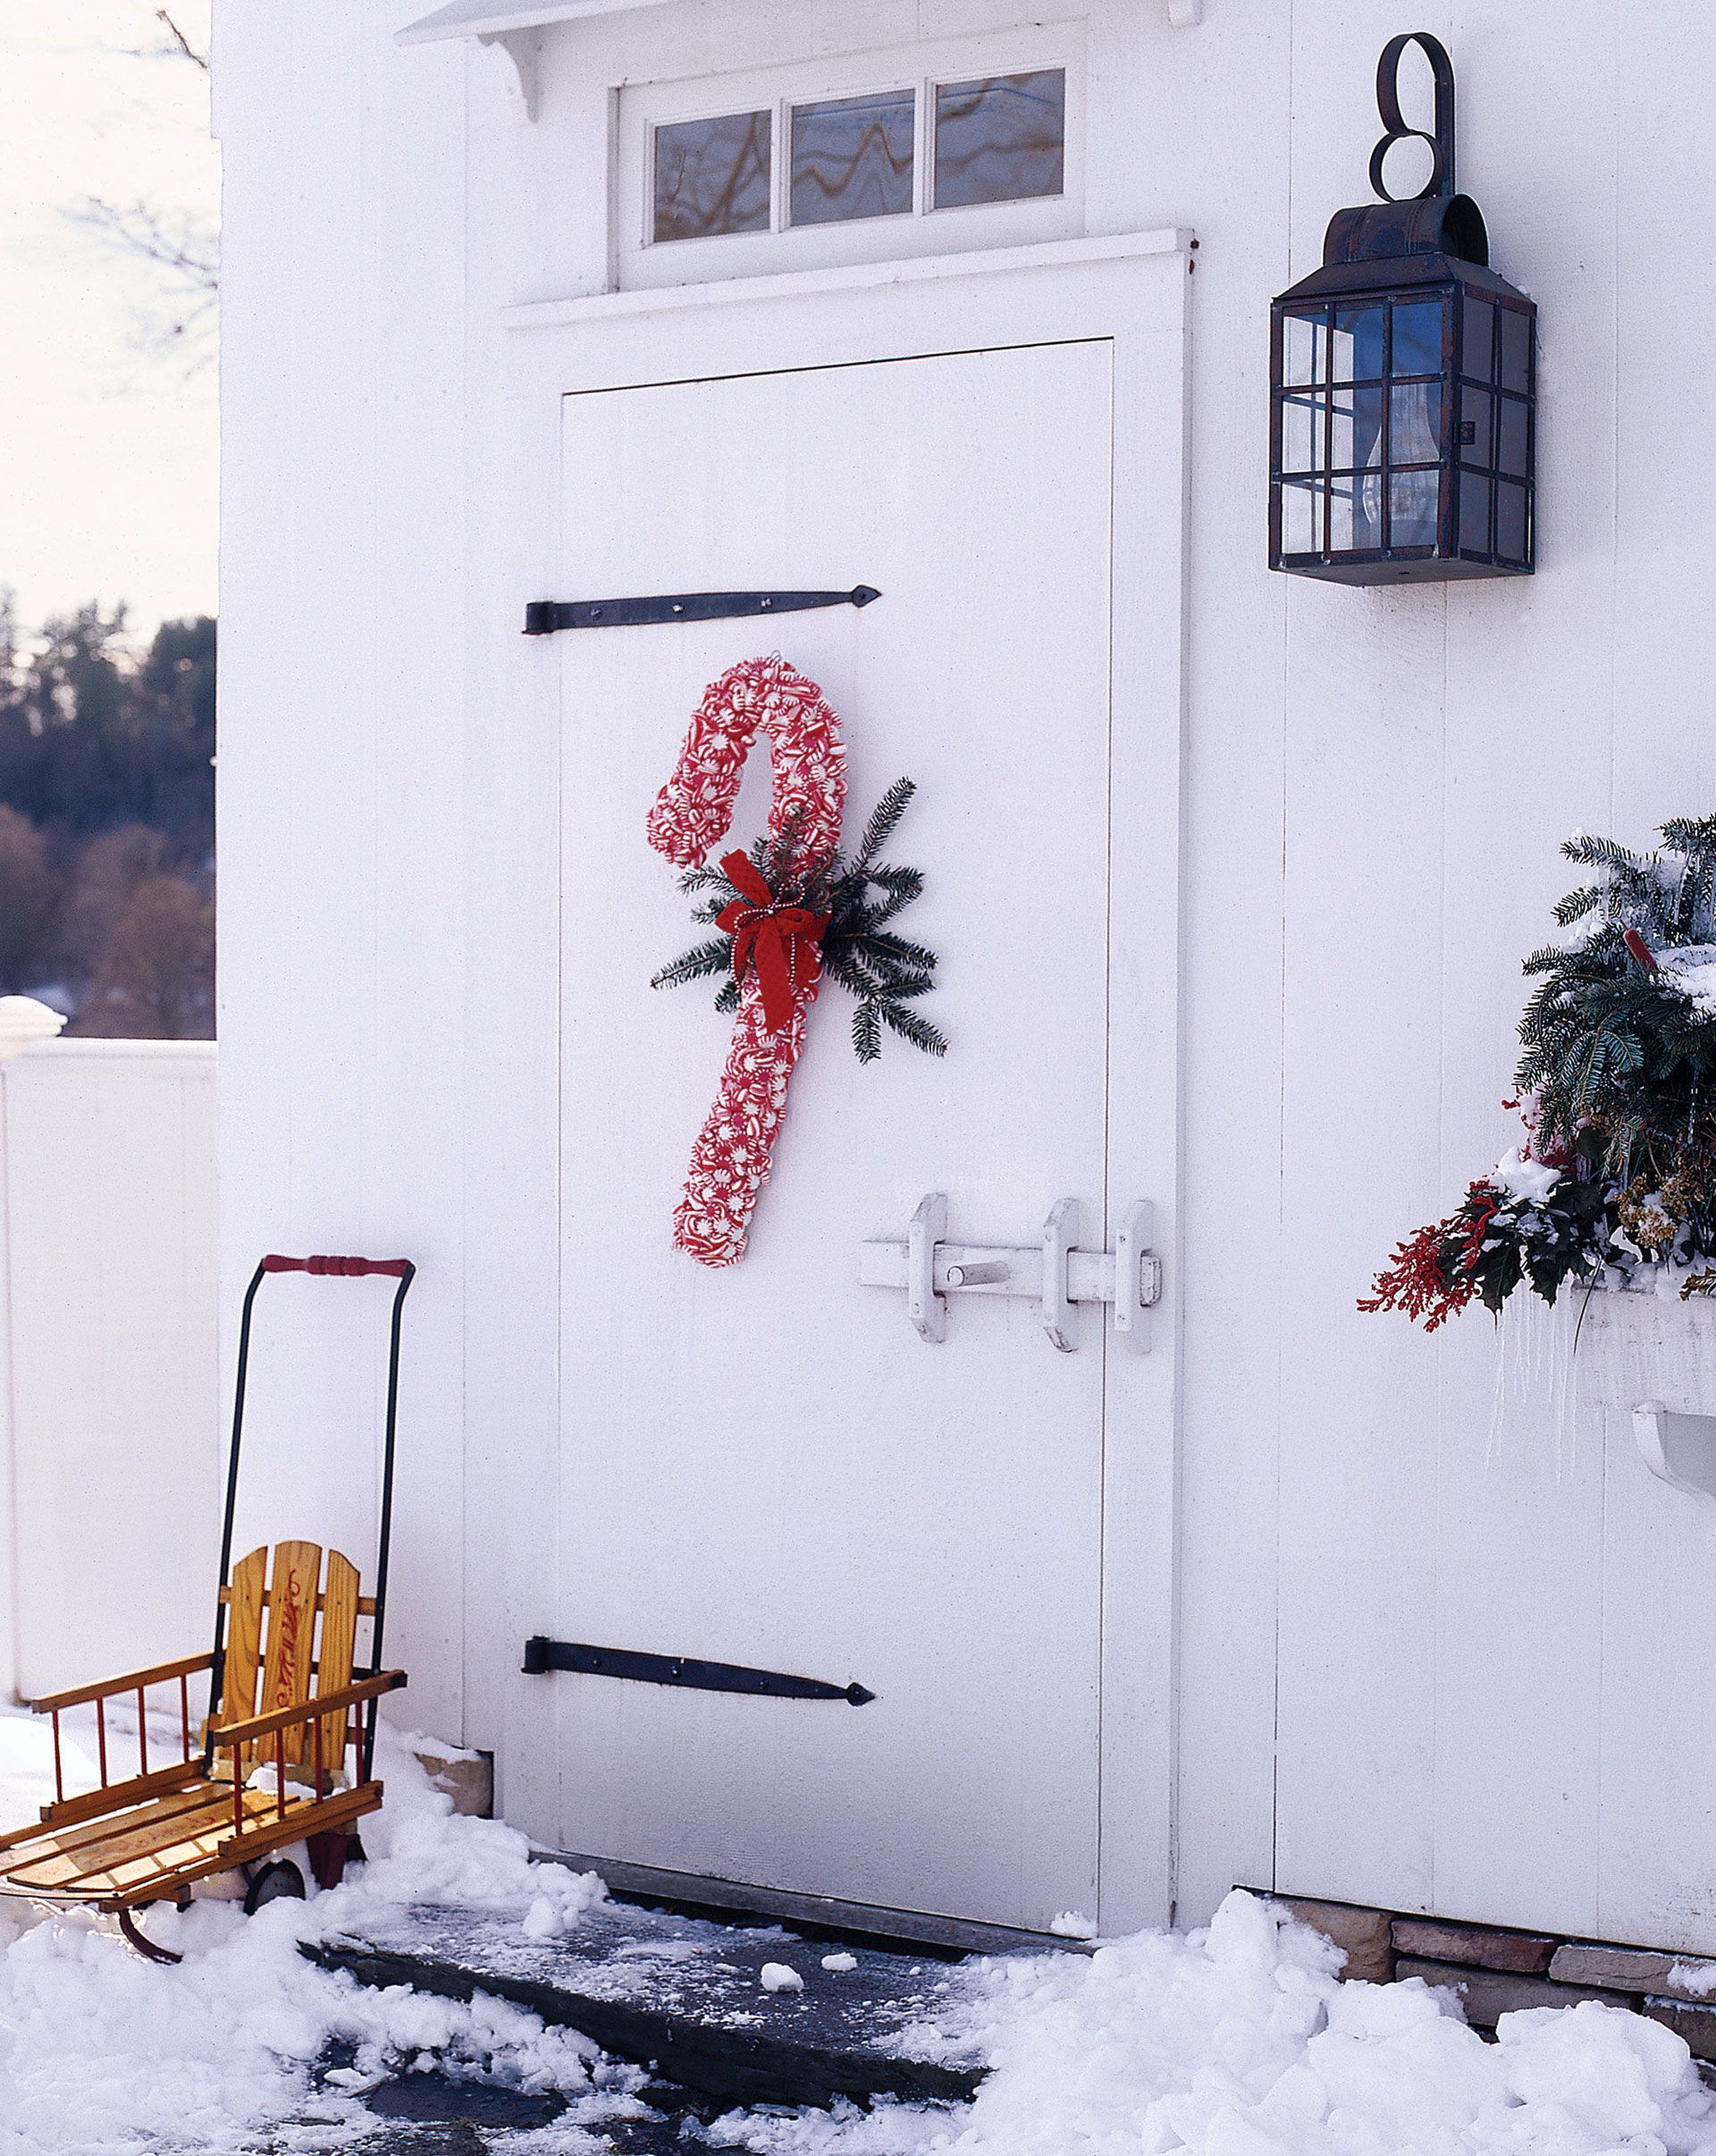 35 christmas door decorating ideas best decorations for your front 35 christmas door decorating ideas best decorations for your front door solutioingenieria Choice Image